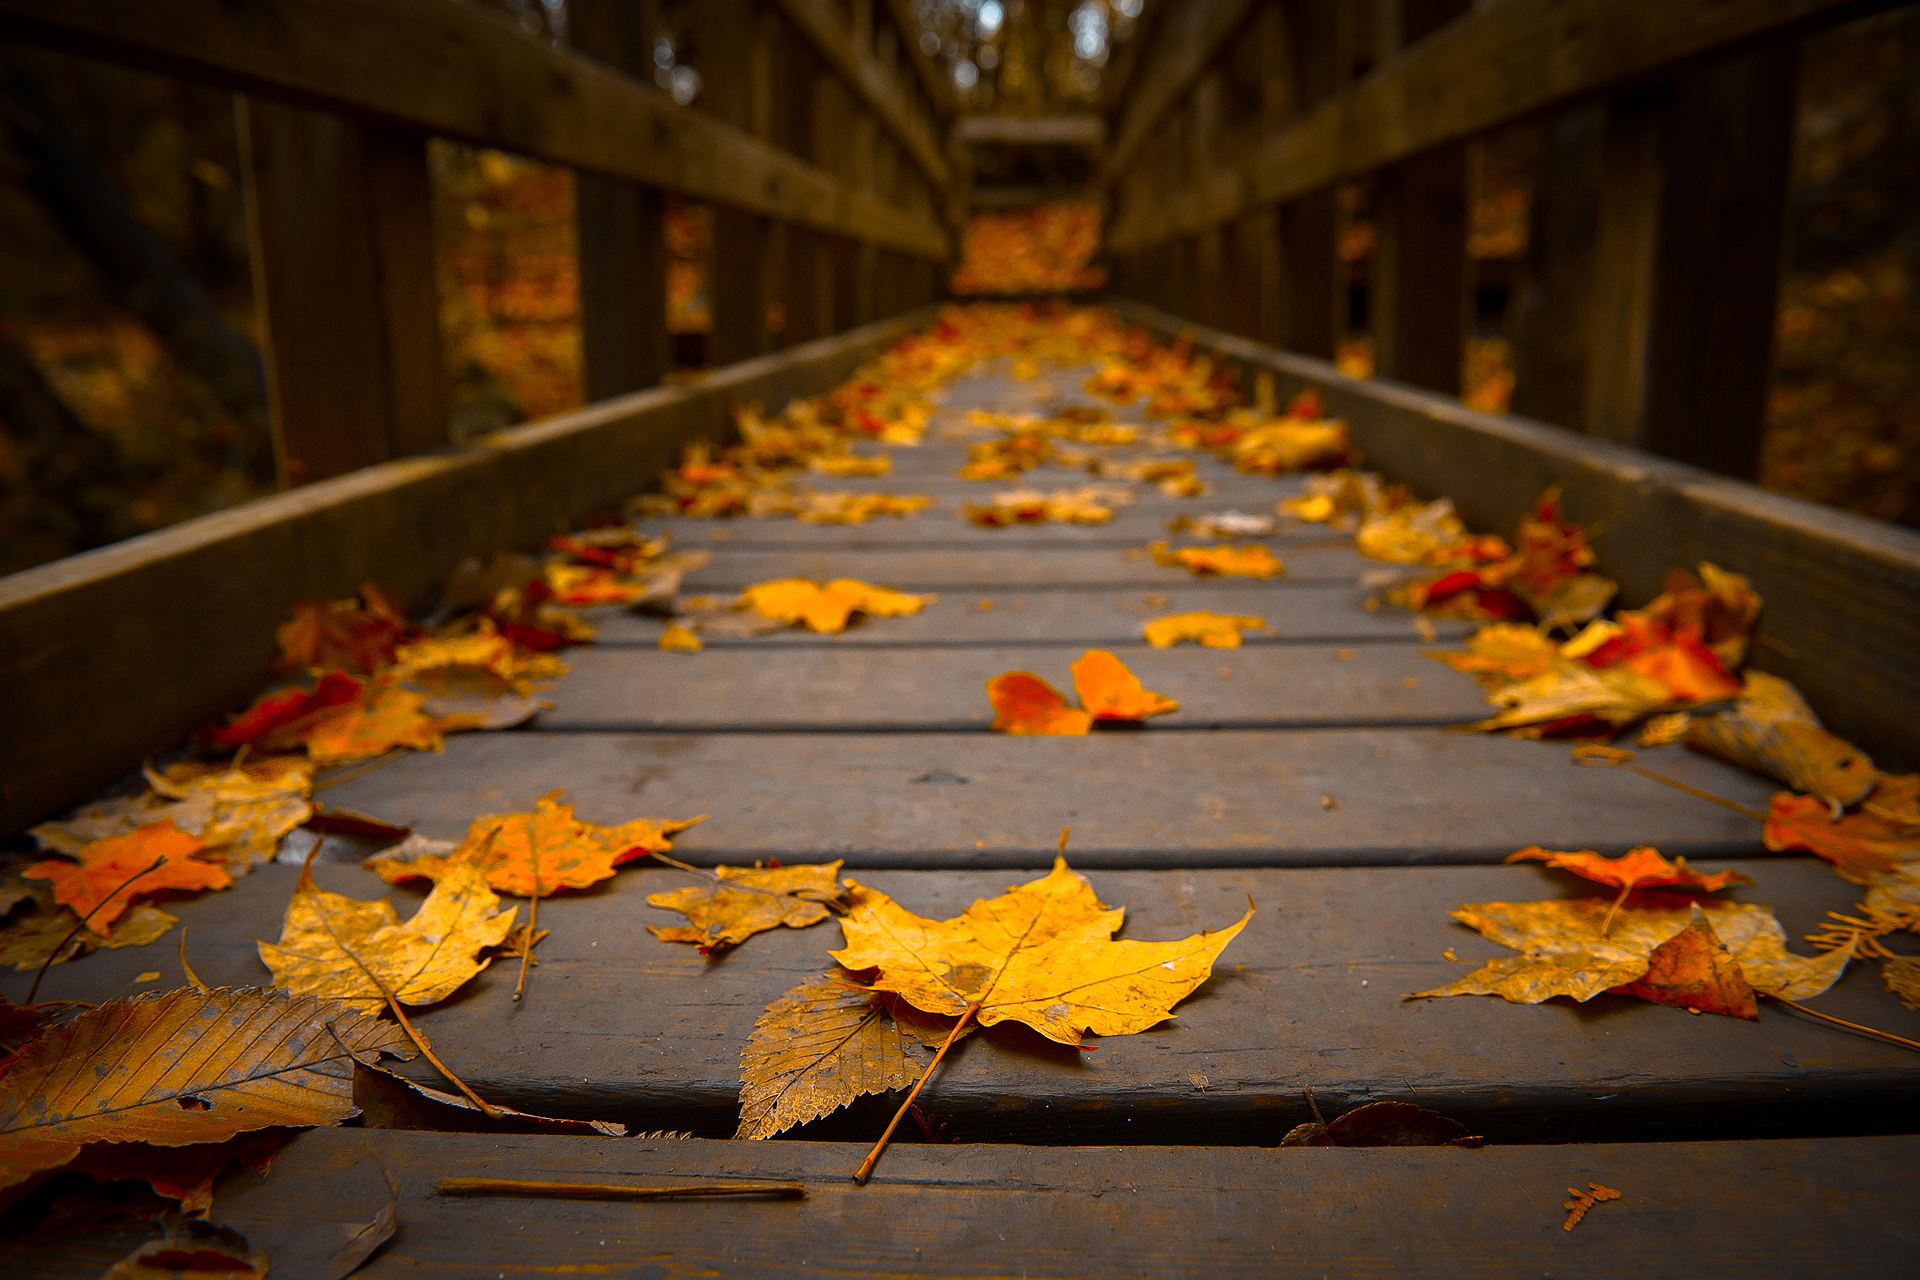 Autumn Leaves on a Bridge 947.94 Kb